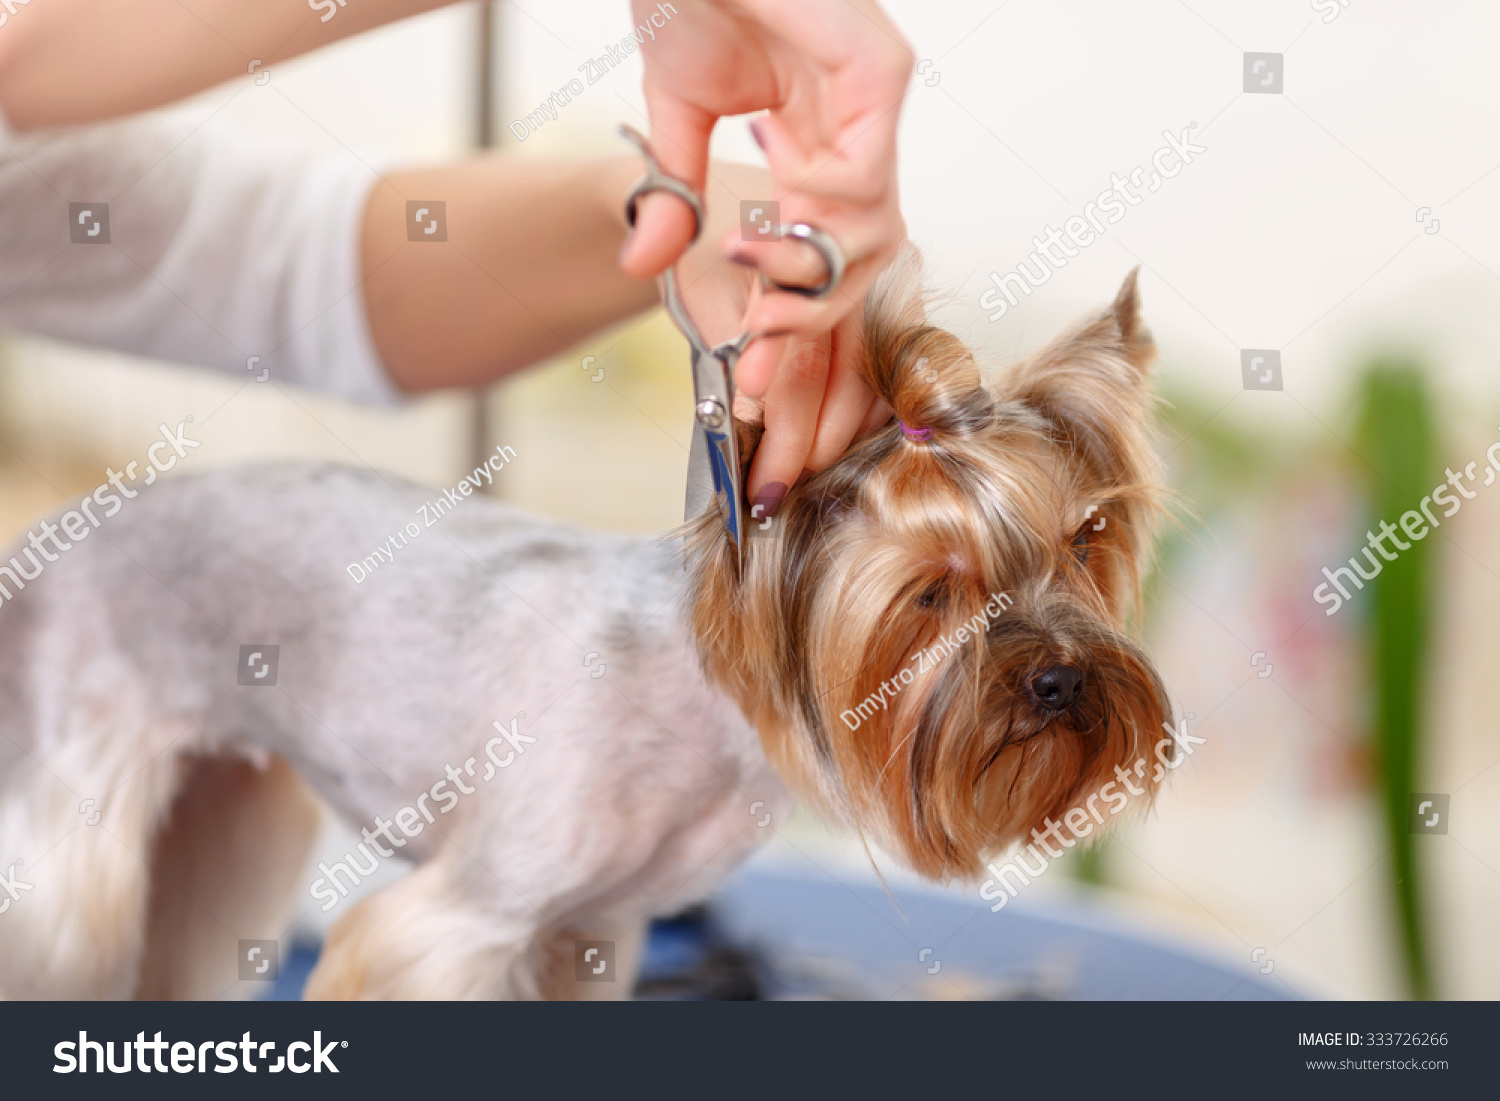 Coiffure Yorkshire Changing Coiffure Miniature Yorkshire Terrier Stands Stock